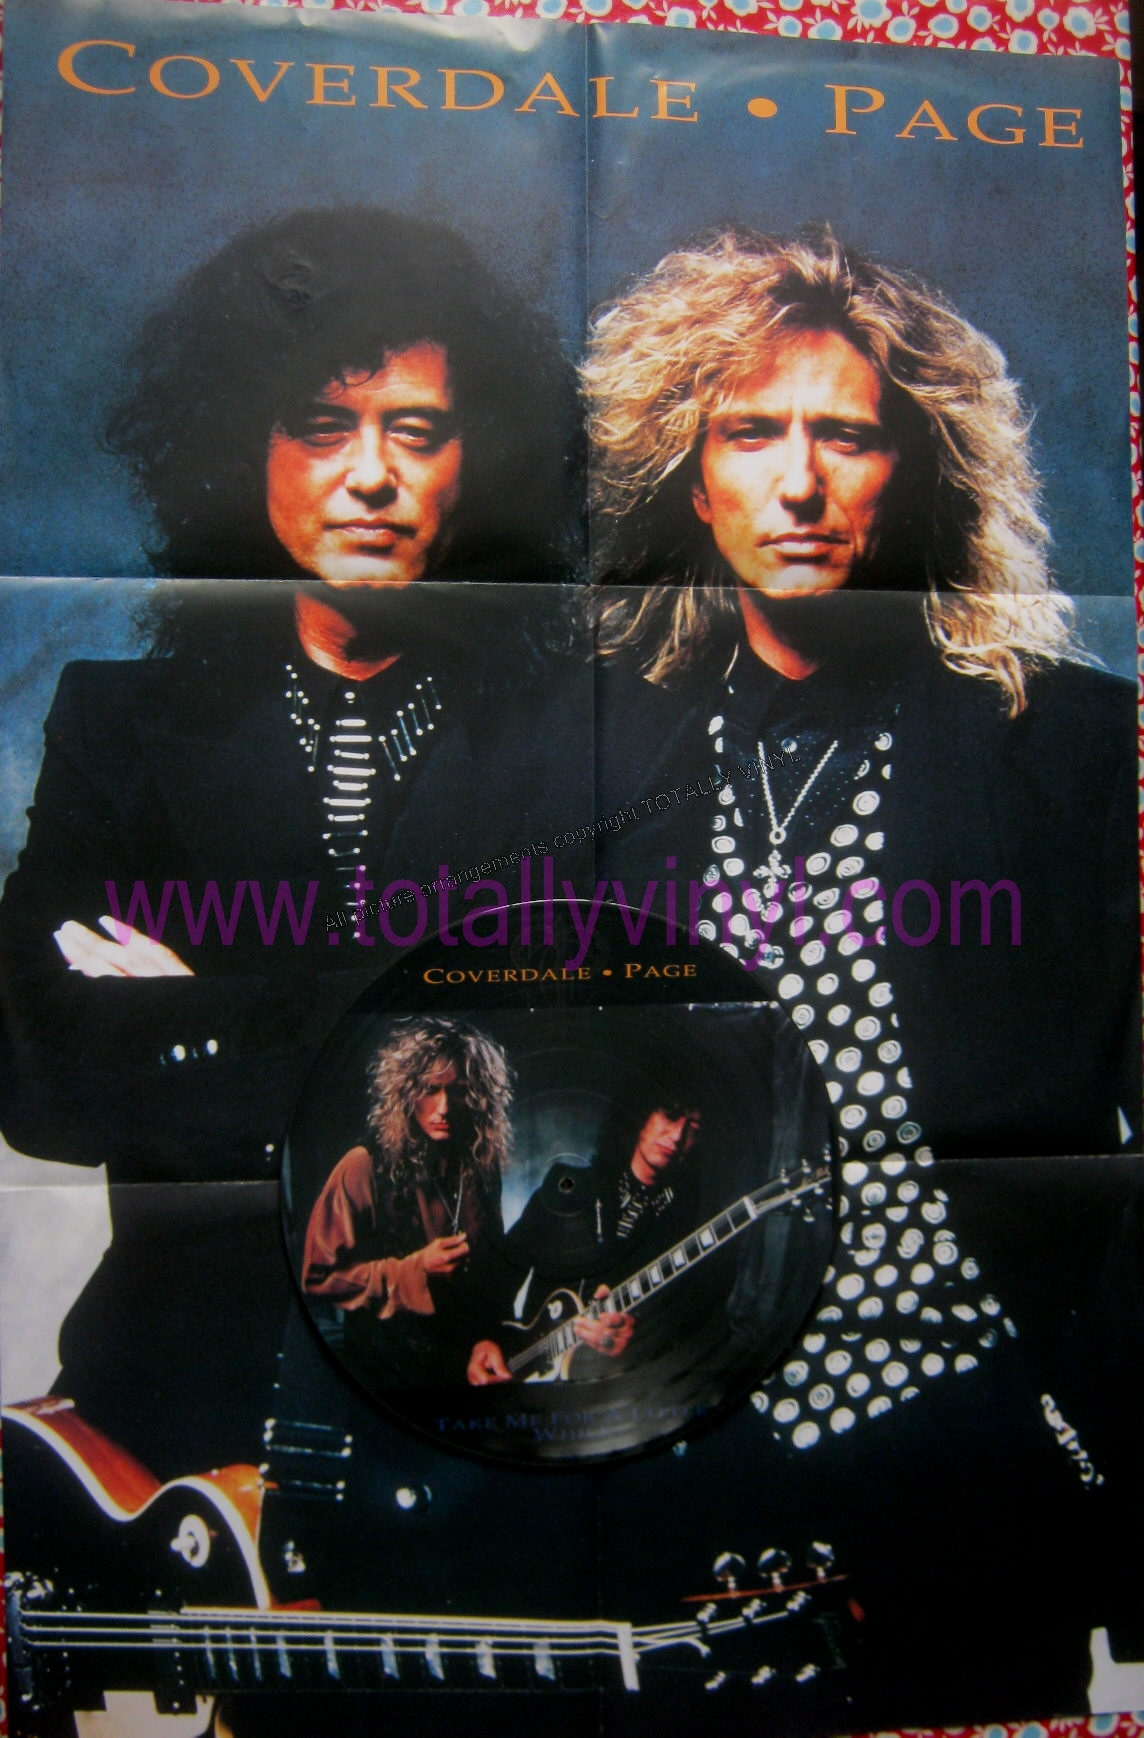 Totally Vinyl Records Coverdale Page Take Me For A